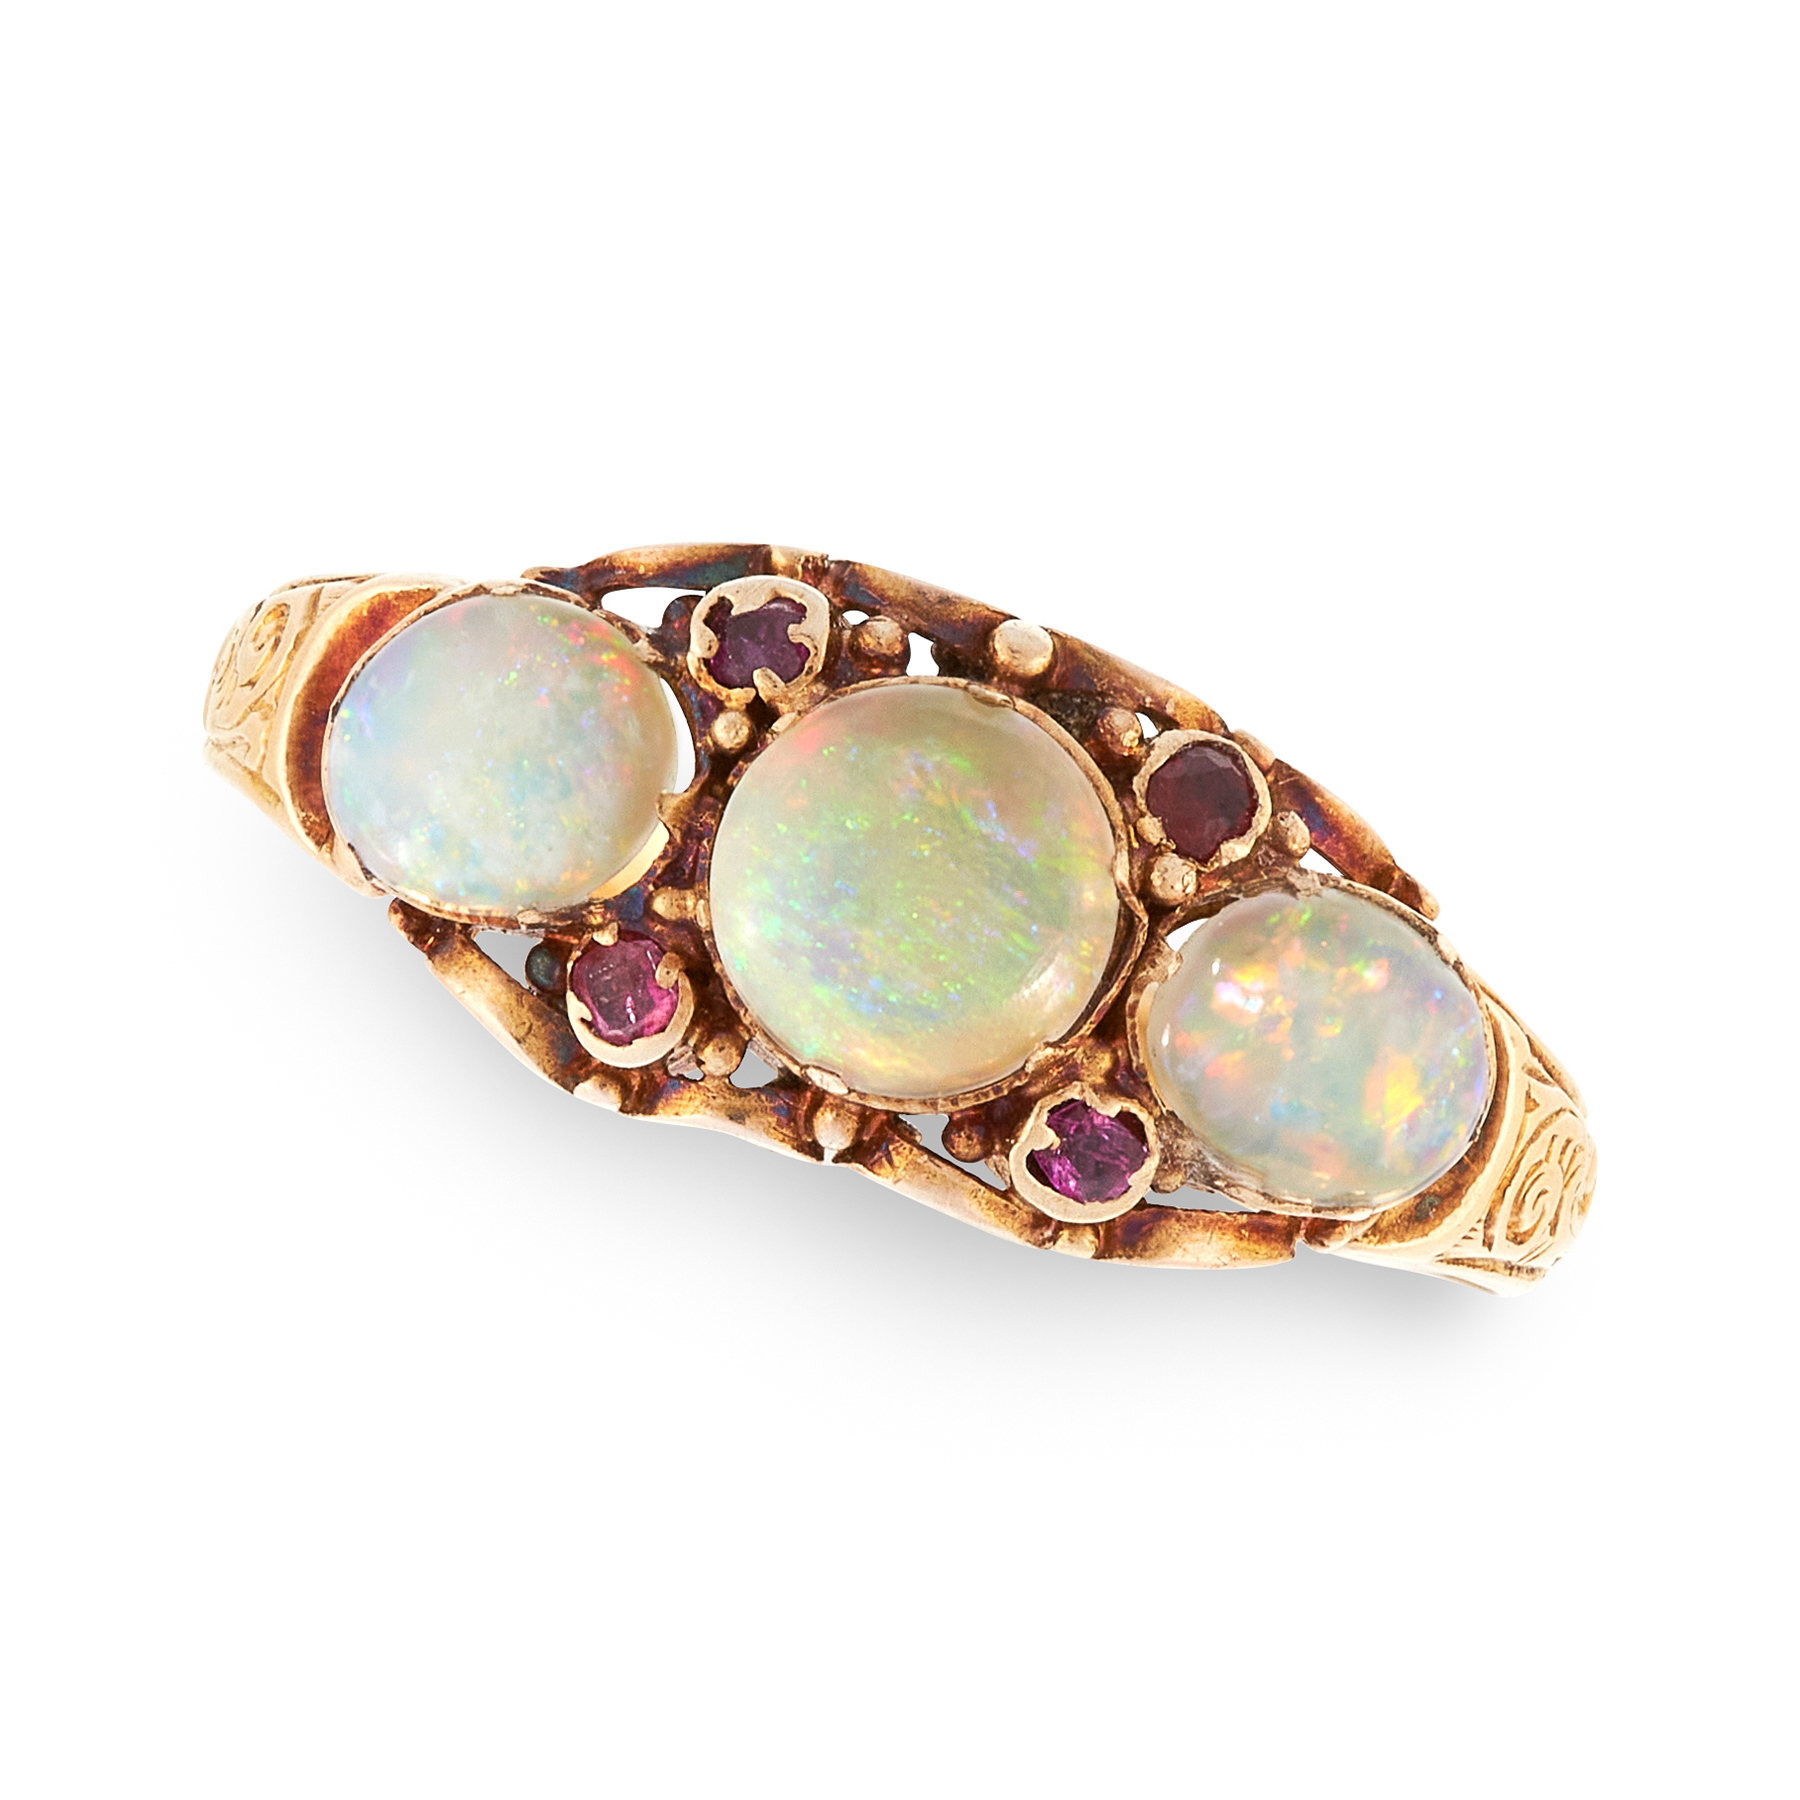 AN ANTIQUE OPAL AND RUBY DRESS RING in 18ct yellow gold, set with three cabochon opals and round cut